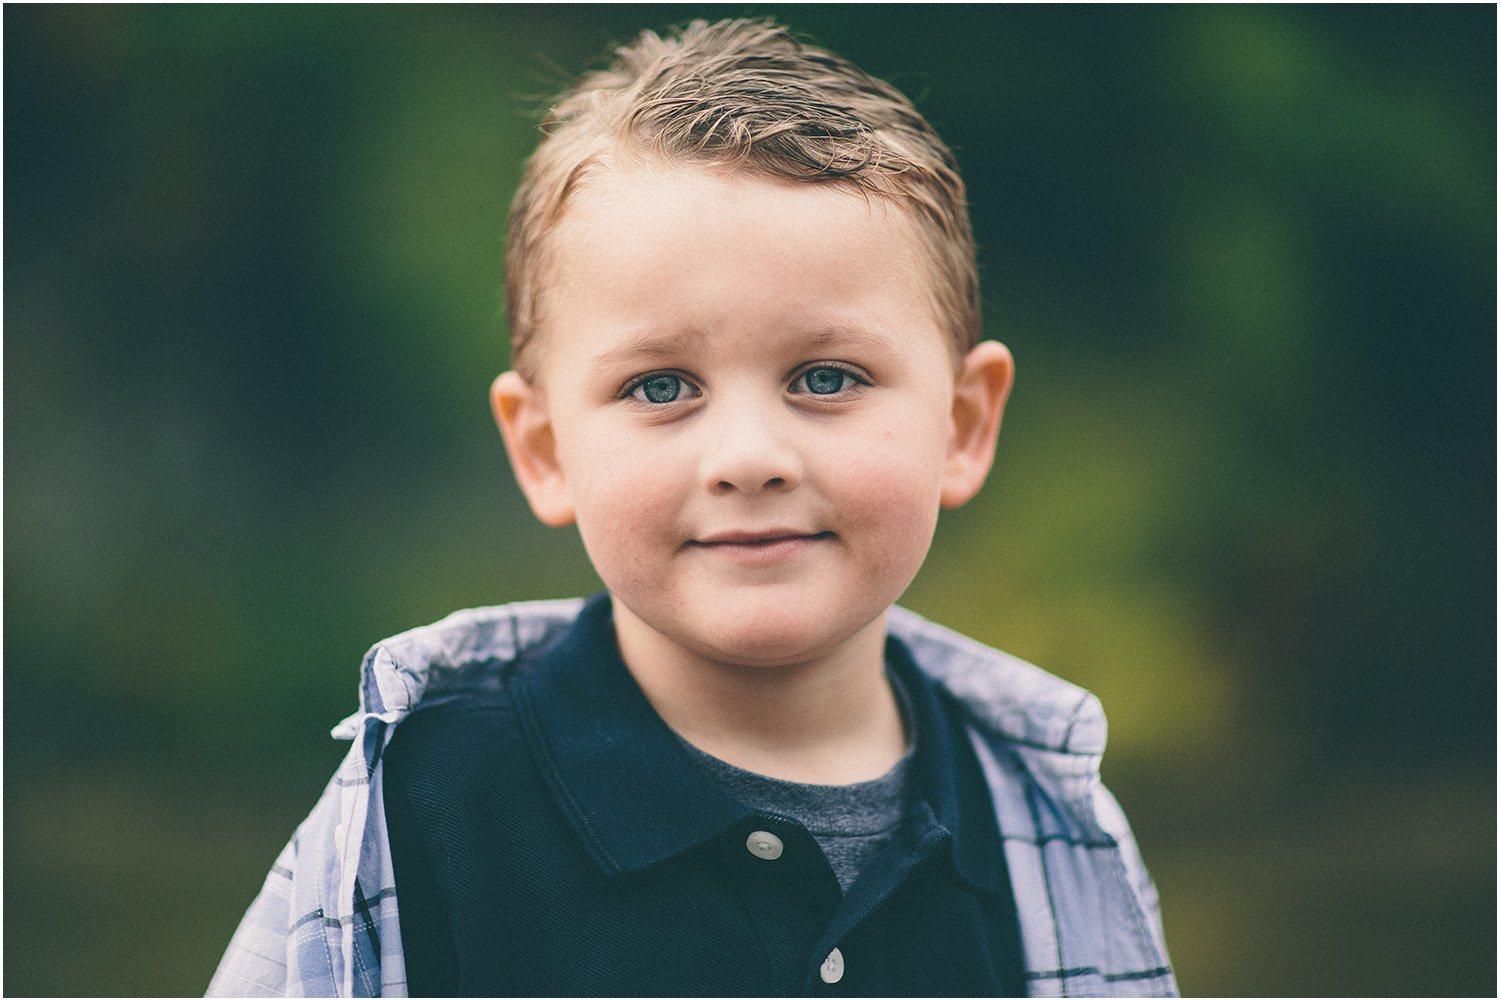 What an adorable boy! - Family Portraits in Cleveland at Rocky River Park